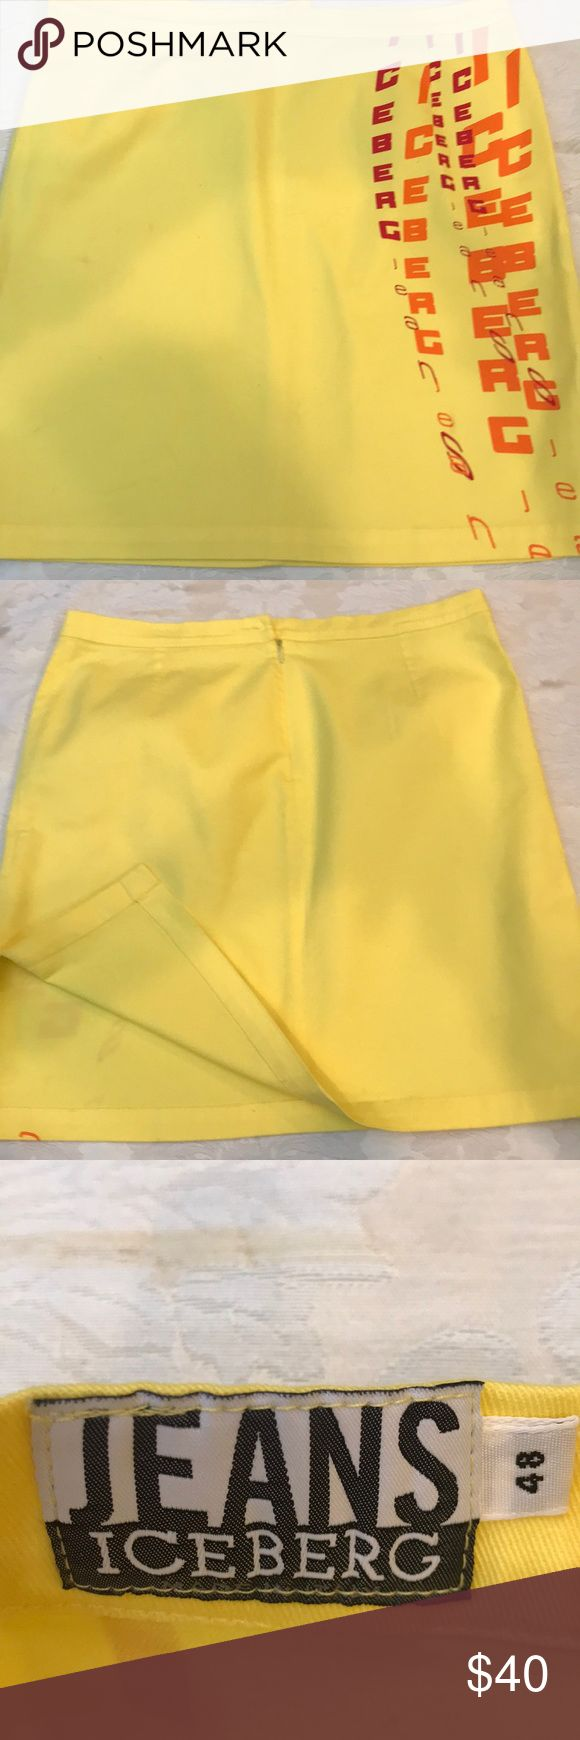 Iceberg jeans skirt sz48 In a very good condition was wear once jeans yellow skirt sz48 by Iceberg Jeans. Missing button Iceberg Skirts Midi